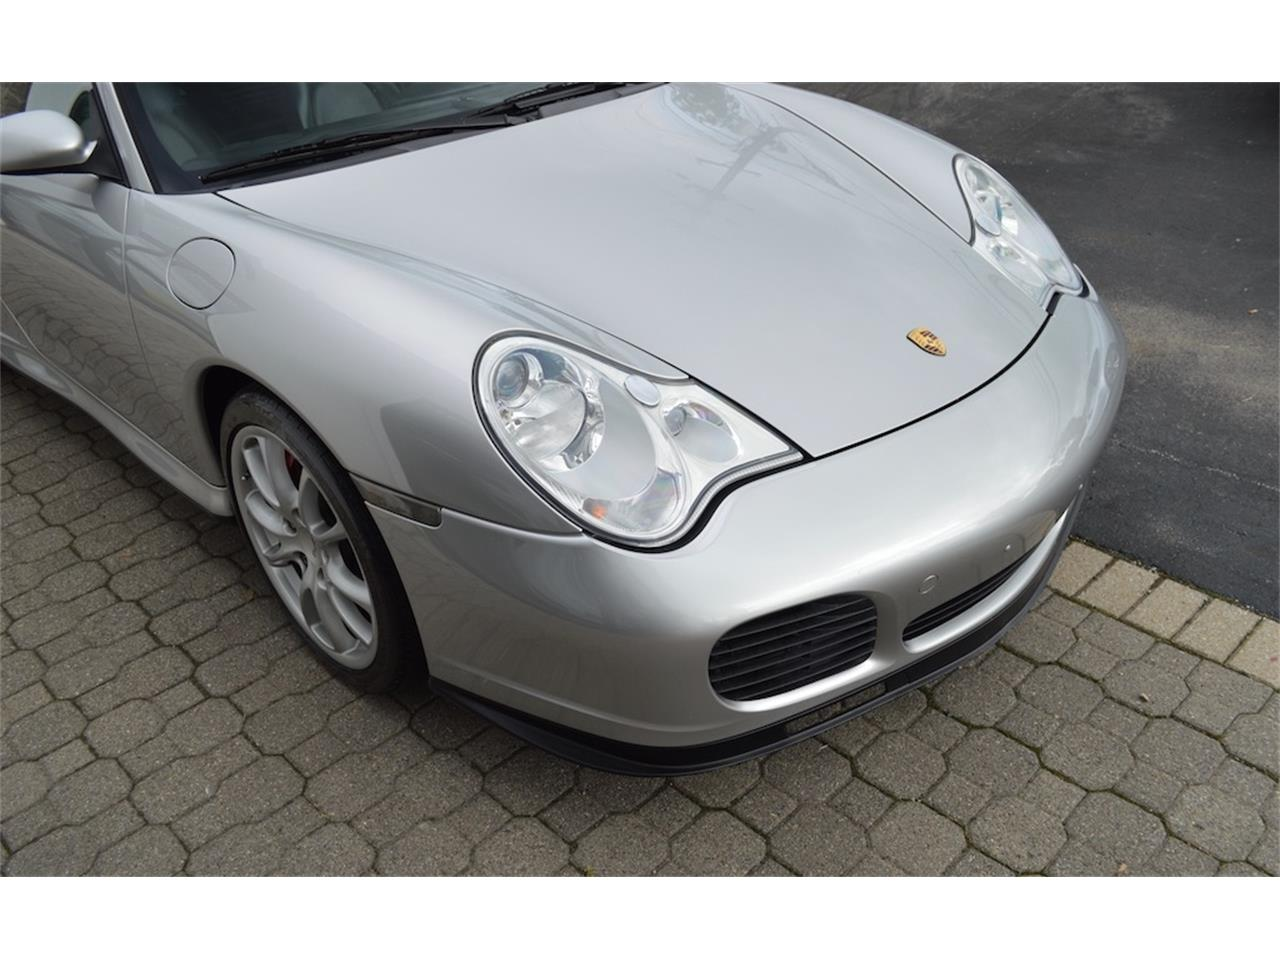 Large Picture of '04 Porsche 996 Turbo Cabriolet located in Pennsylvania Offered by Holt Motorsports - NQV0